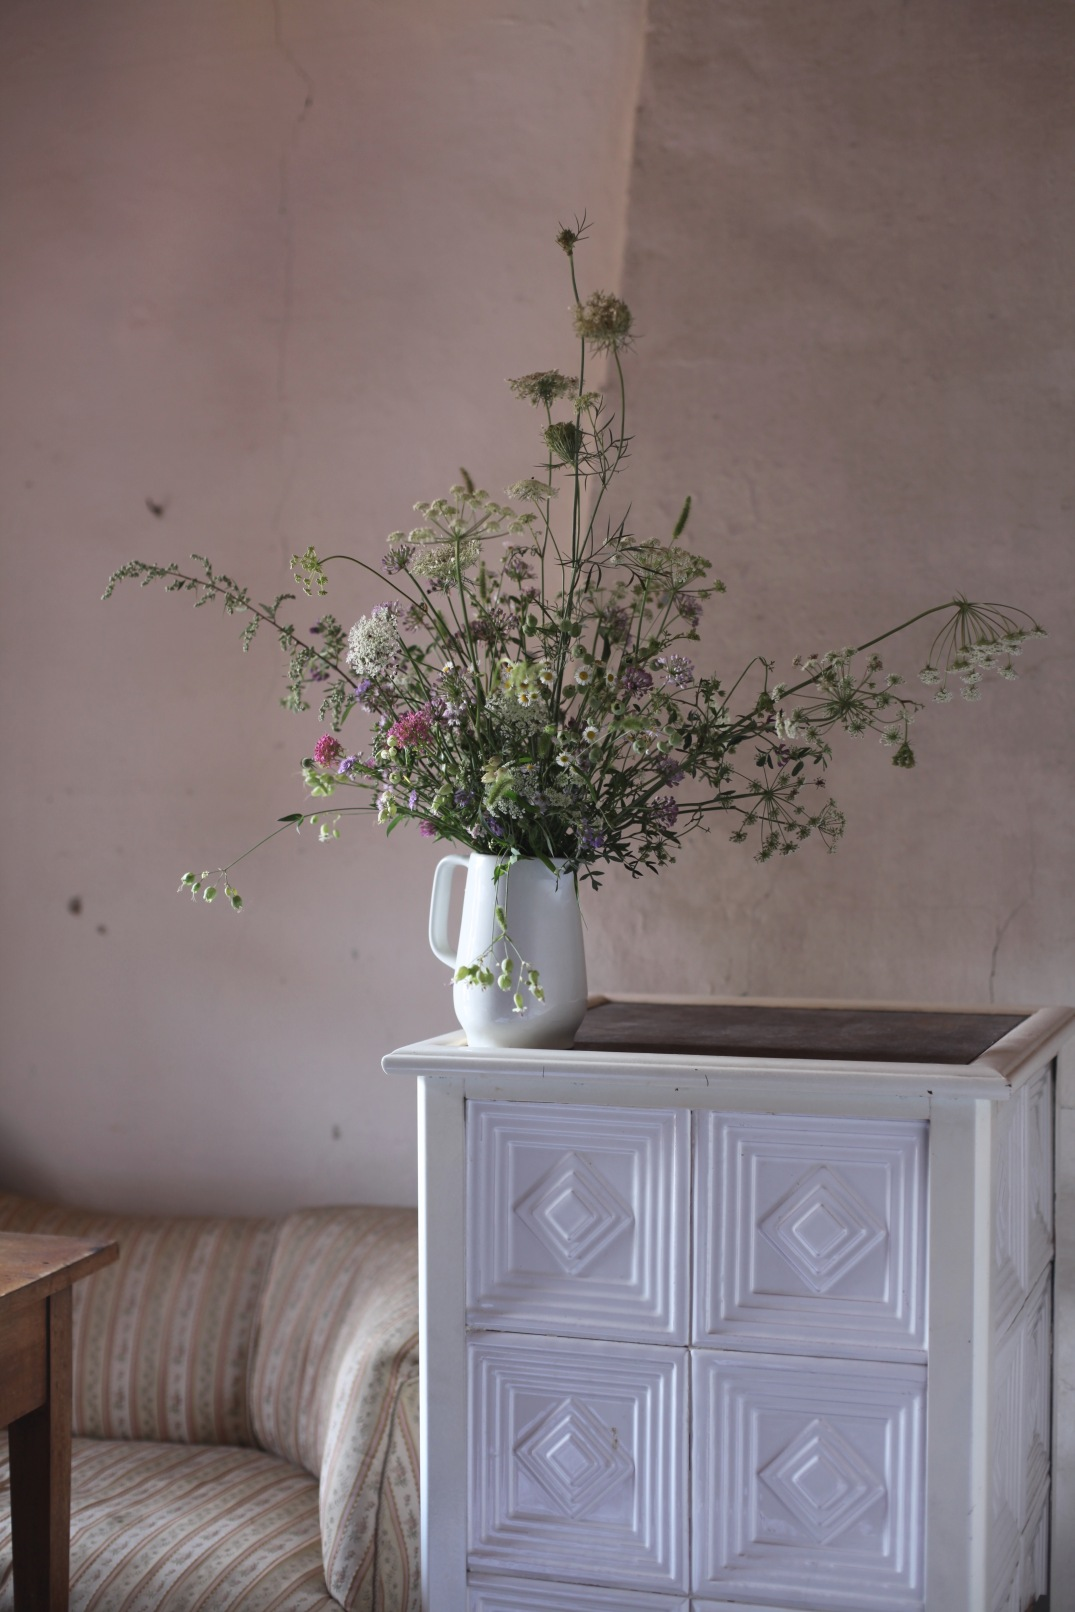 wild flower arrangement and old oven with white tiles